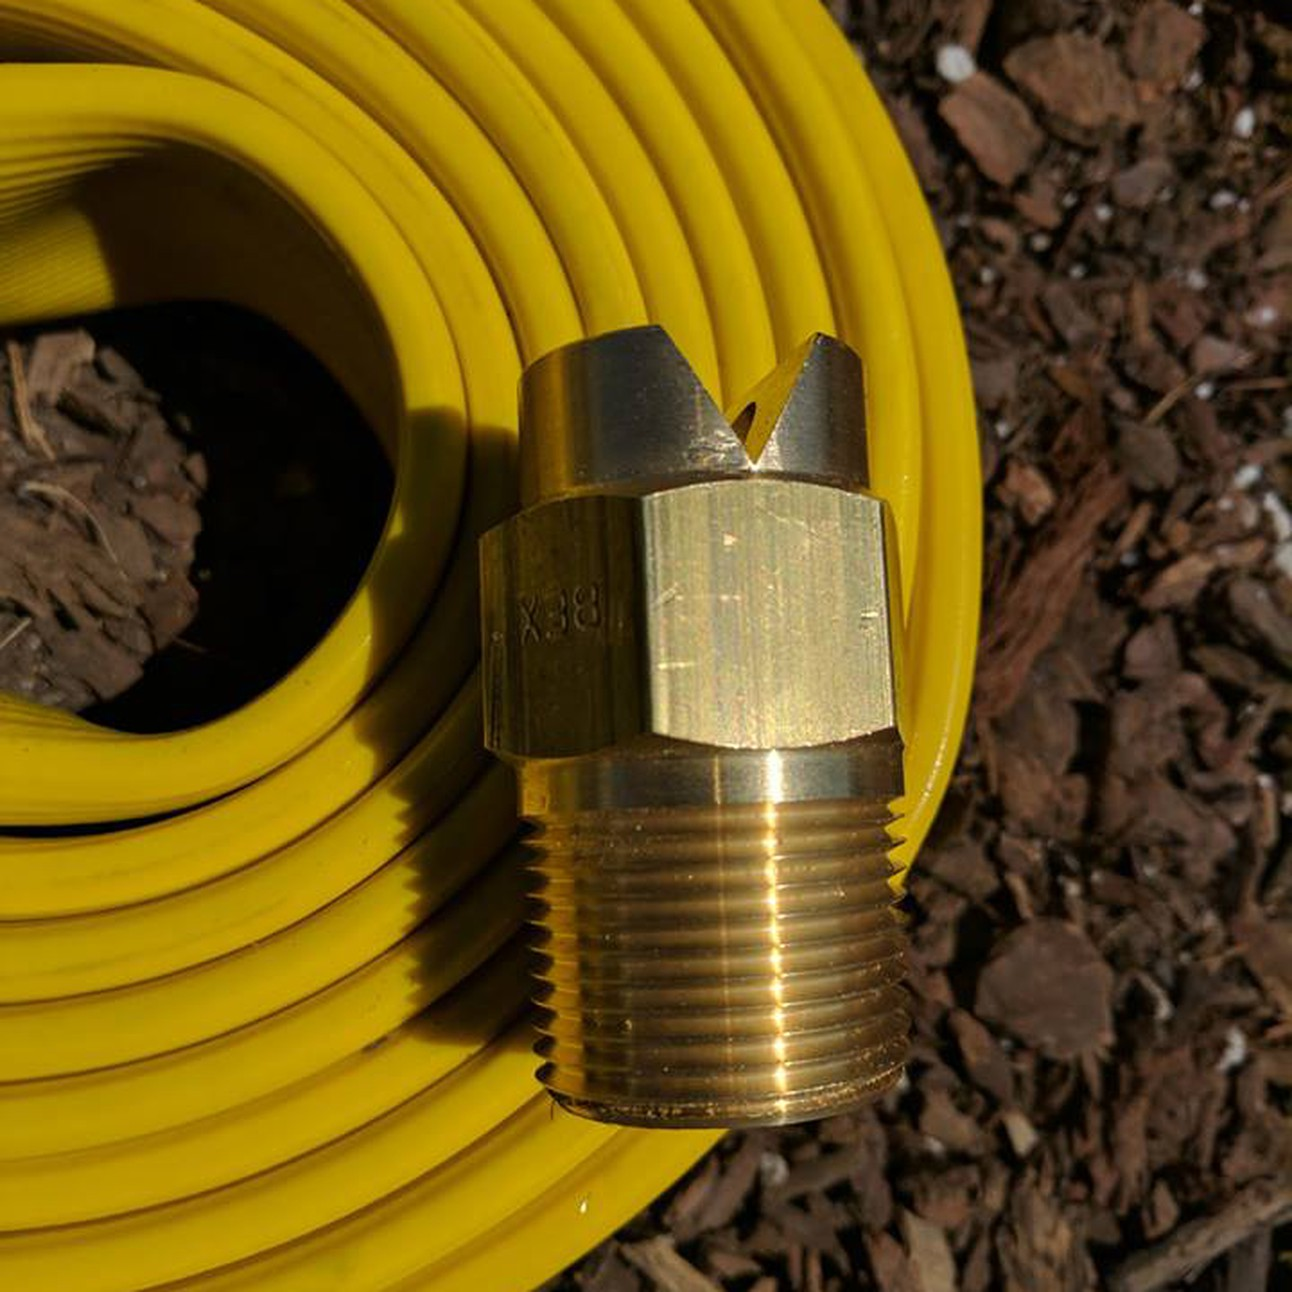 Collapsible Hose / SPX-2700 / Spiral Flex 2700 / section with poly ...